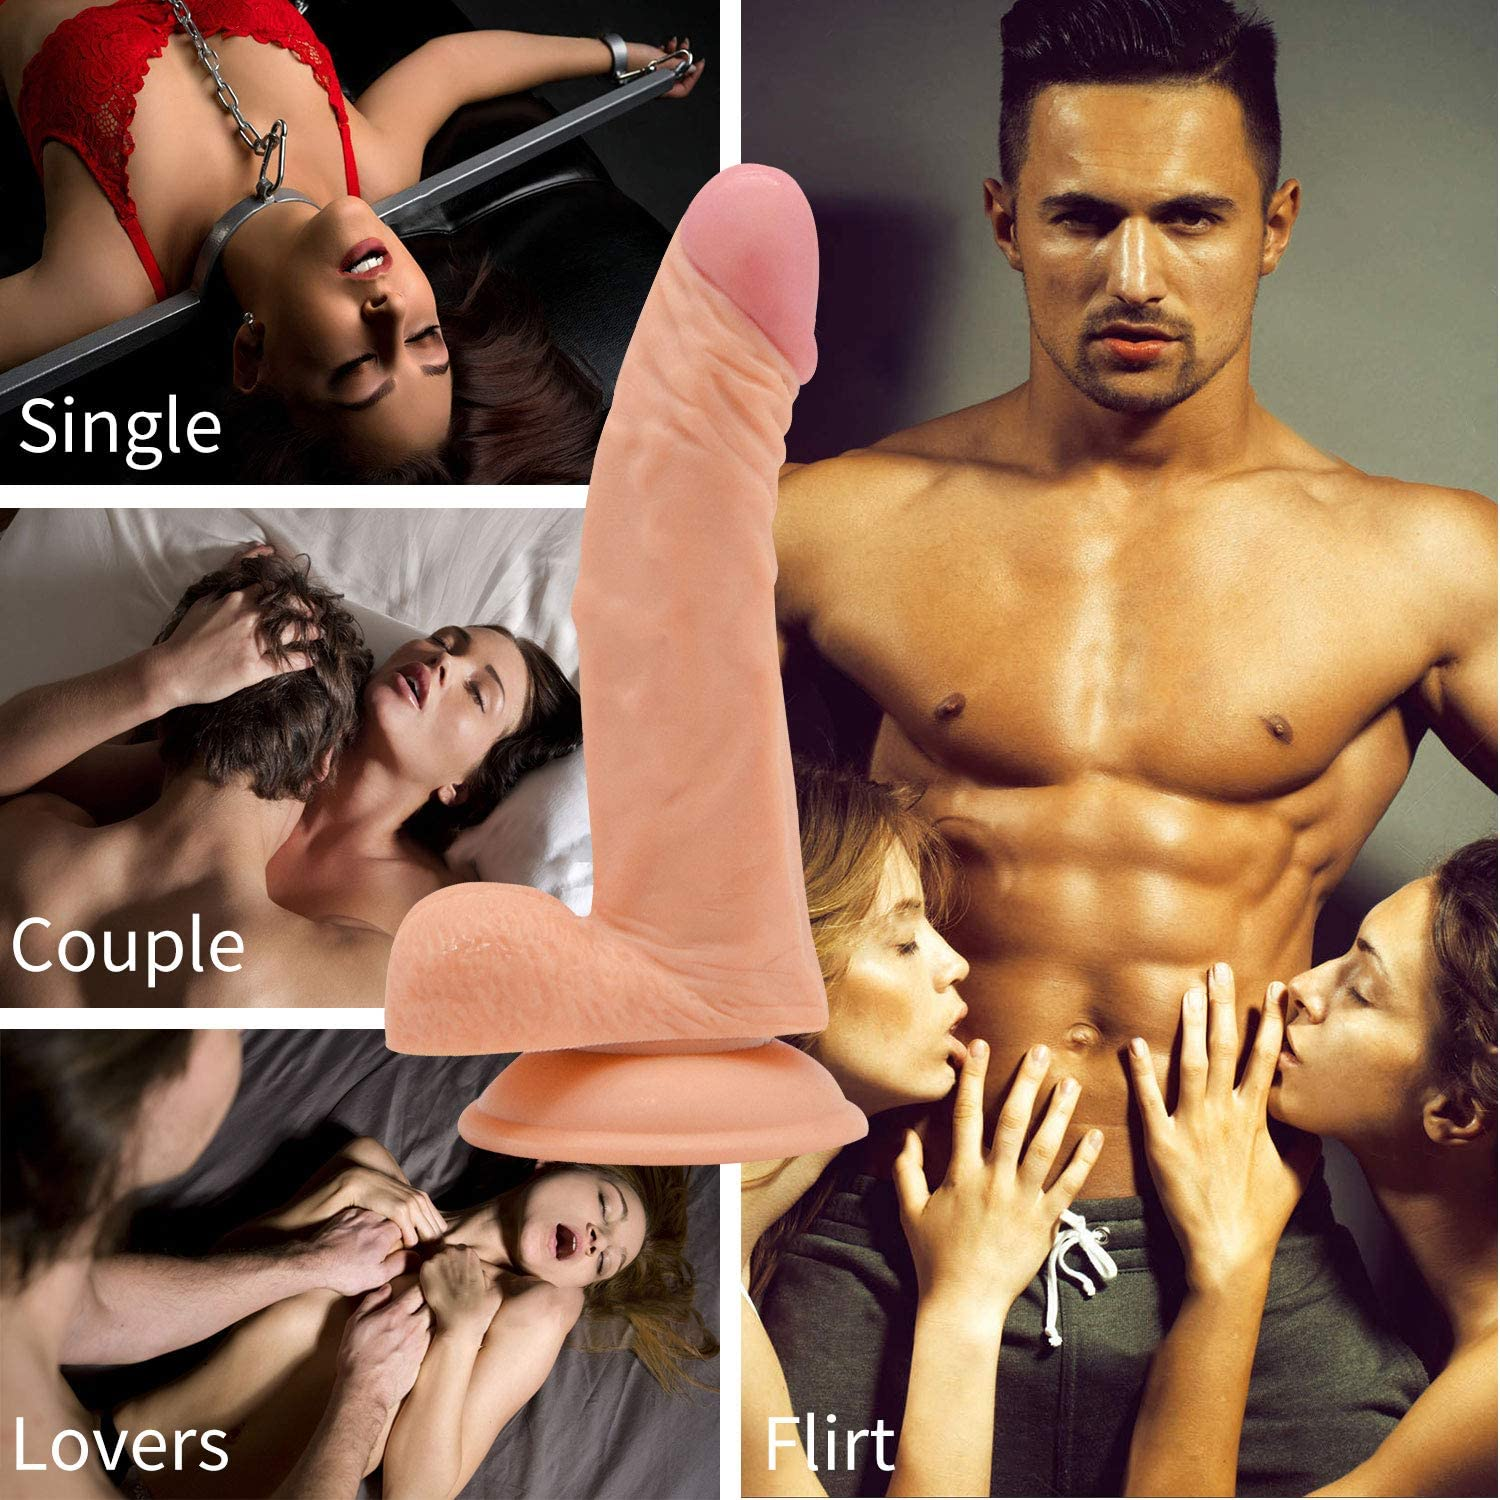 8 Inches Soft Flesh Item Used for Couple in Everywhere You Wanted